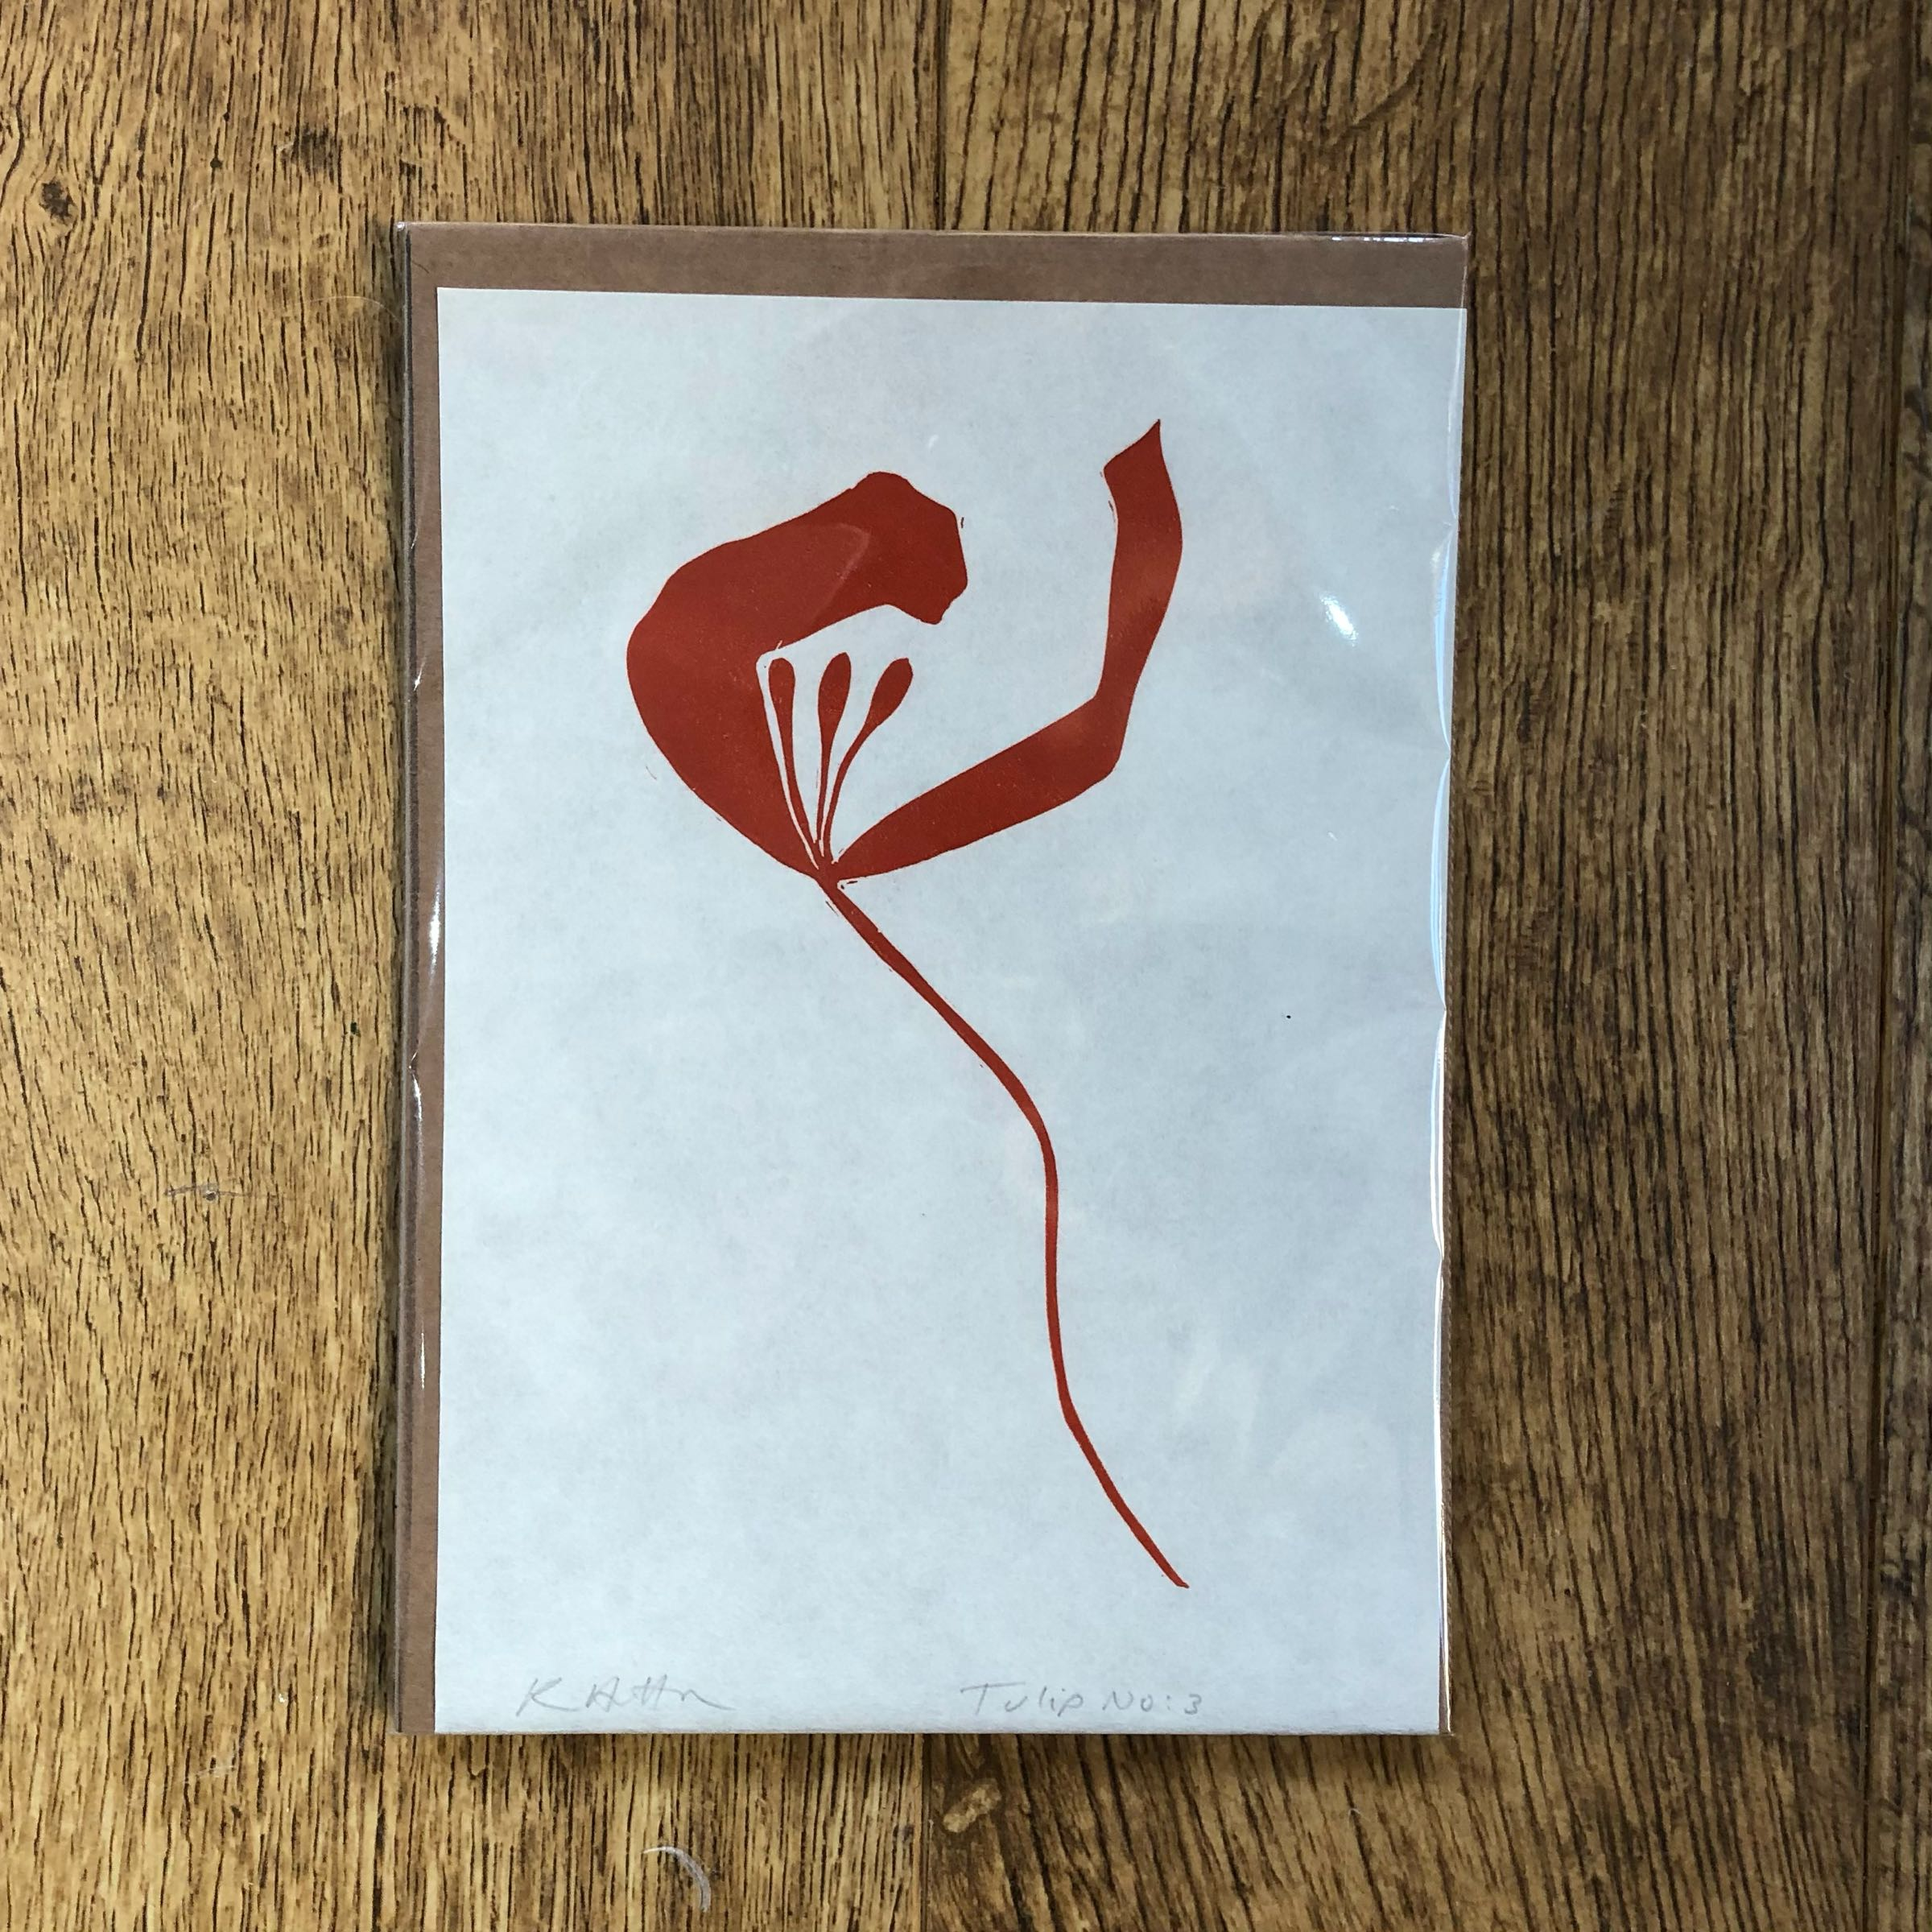 Tulip No.3 single study lino print in Rust by Kathy Hutton